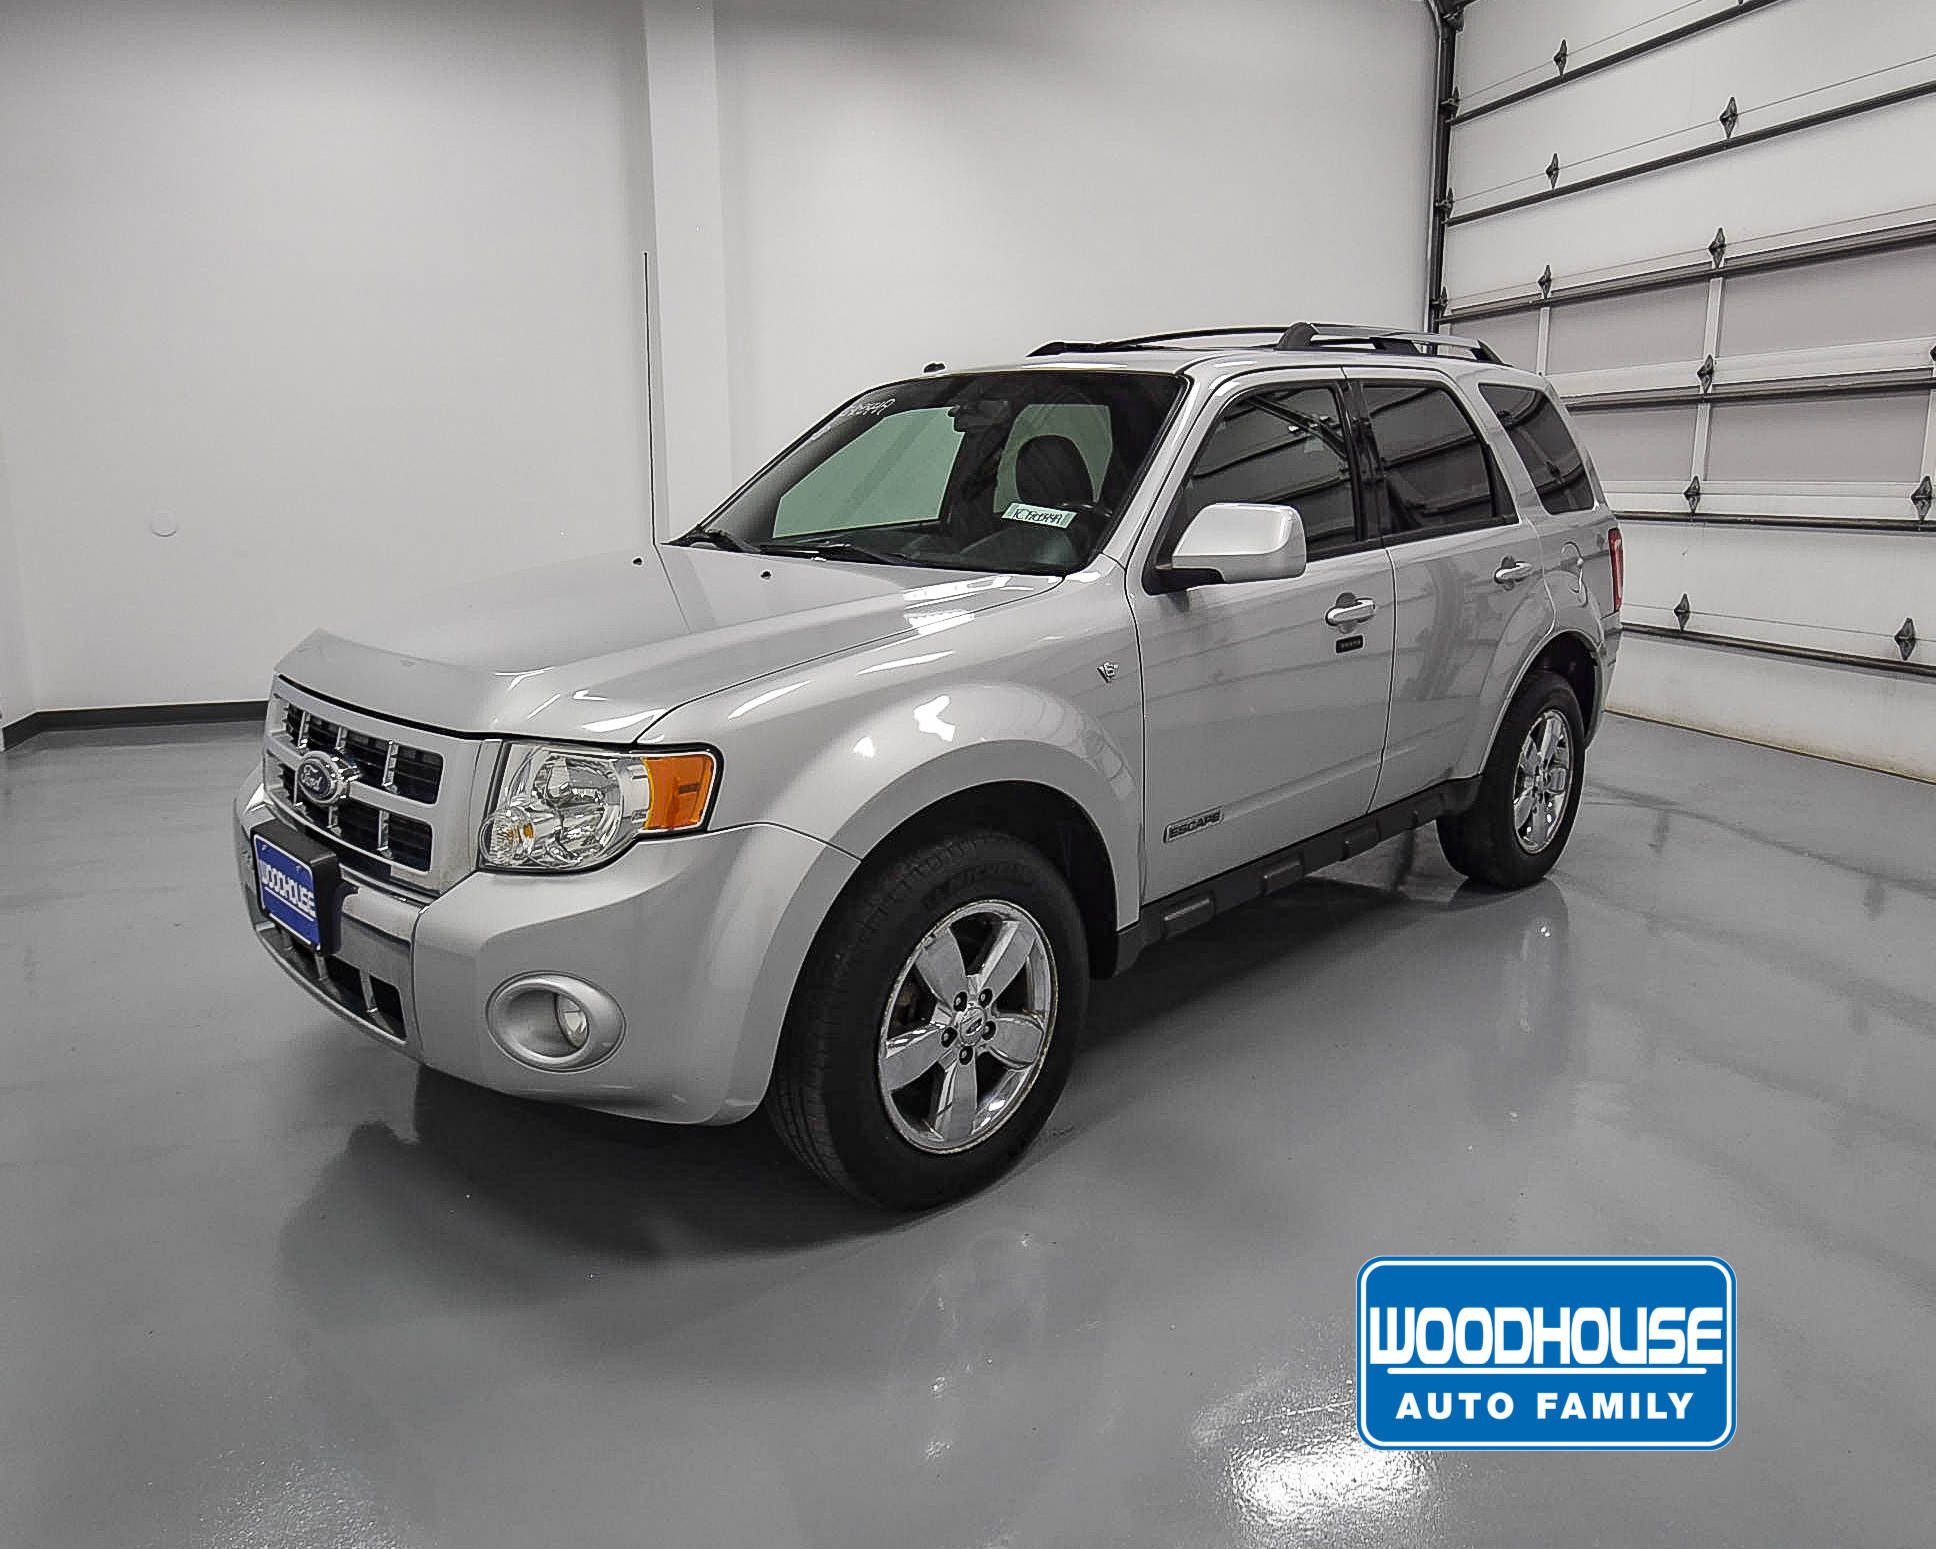 Ford And Ford Auction >> Woodhouse Used 2008 Ford Escape For Sale Auction Omaha Wh9